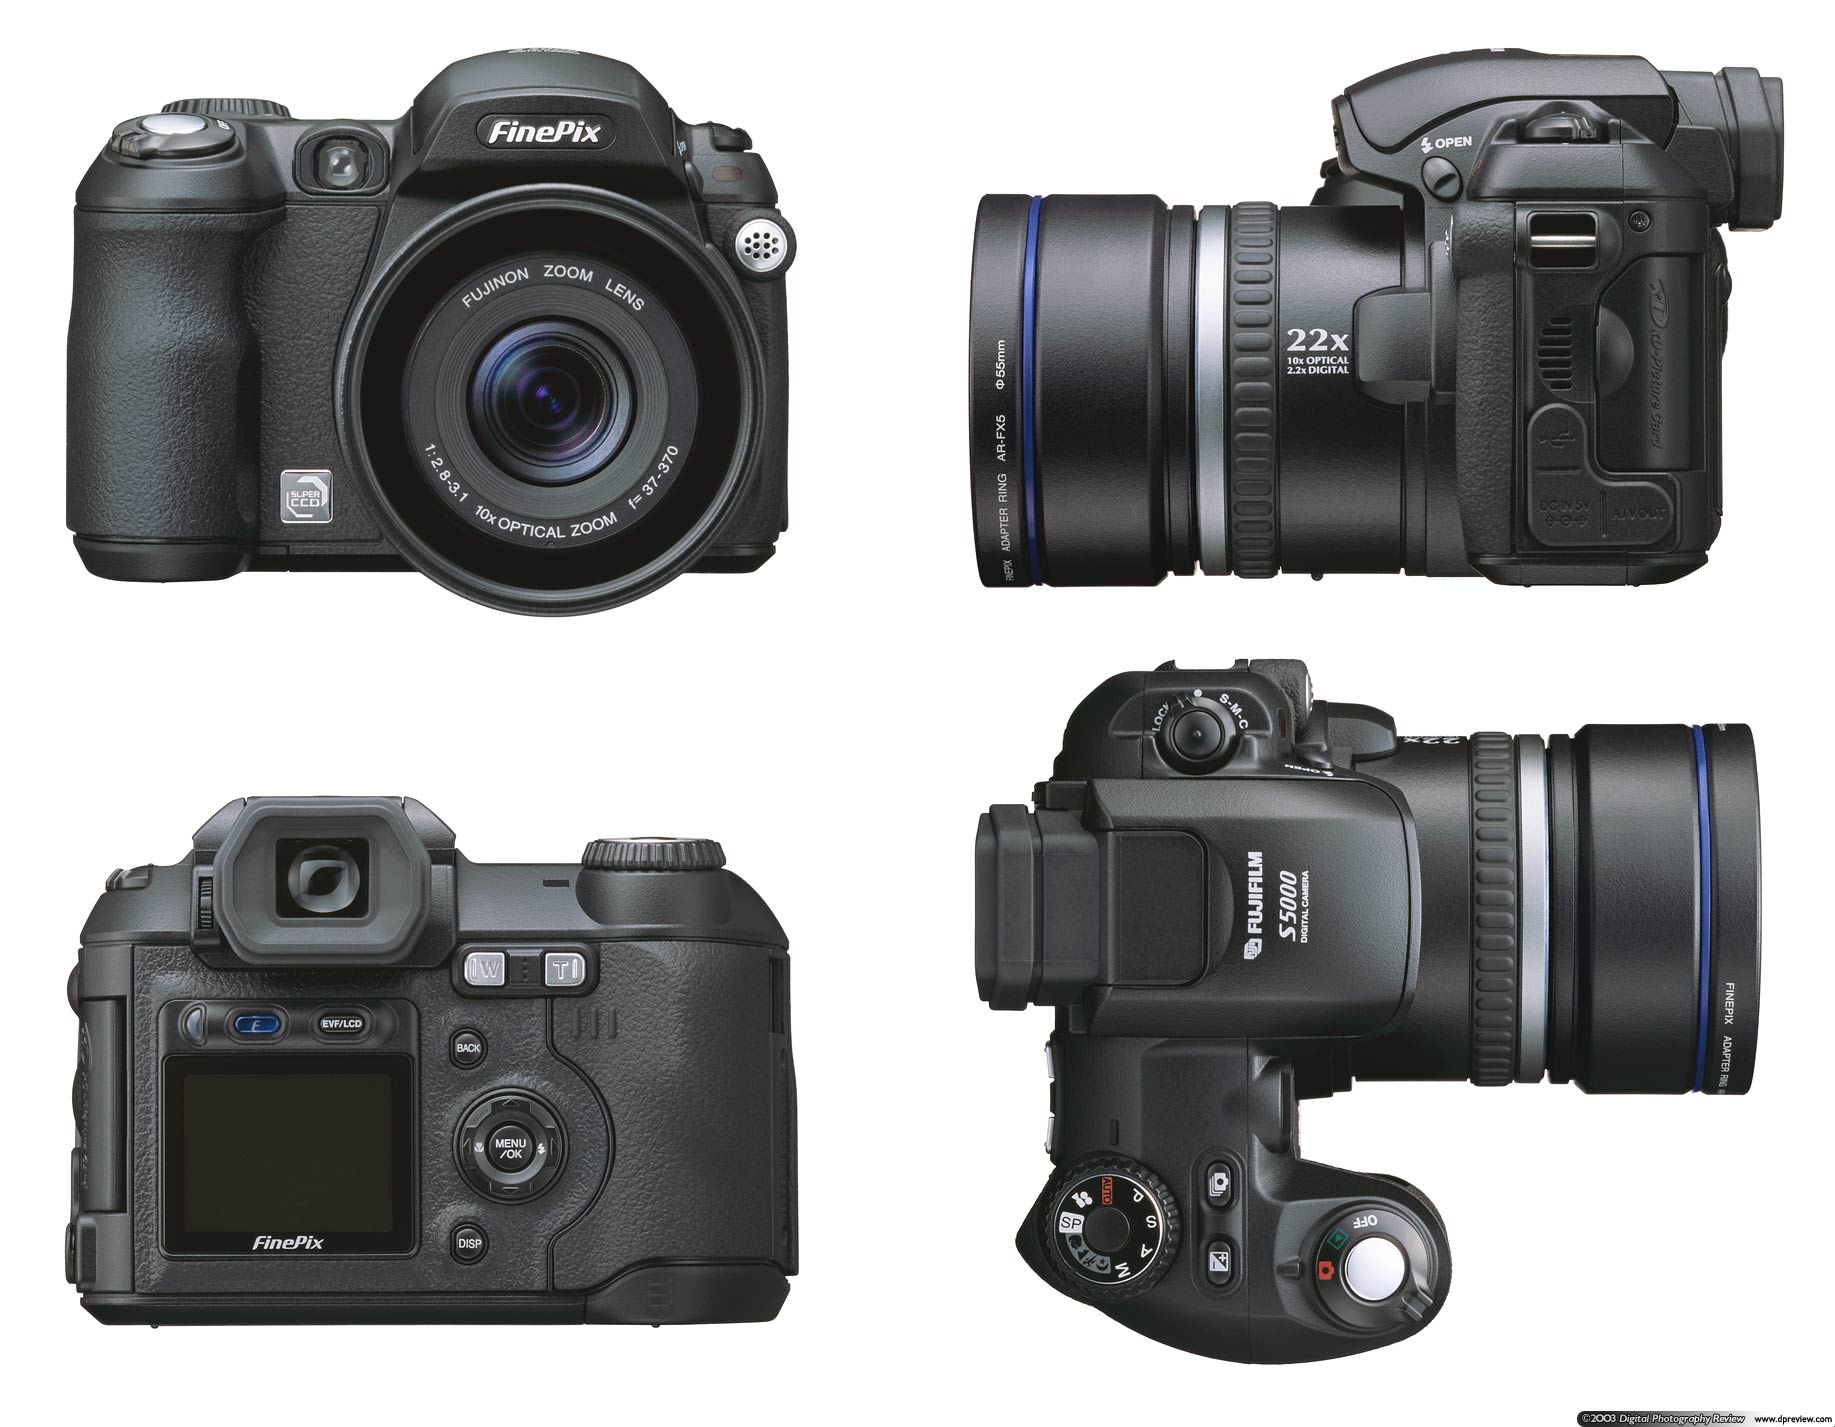 Fujifilm finepix s5000 zoom and preview digital for Fujifilm finepix s5000 prix